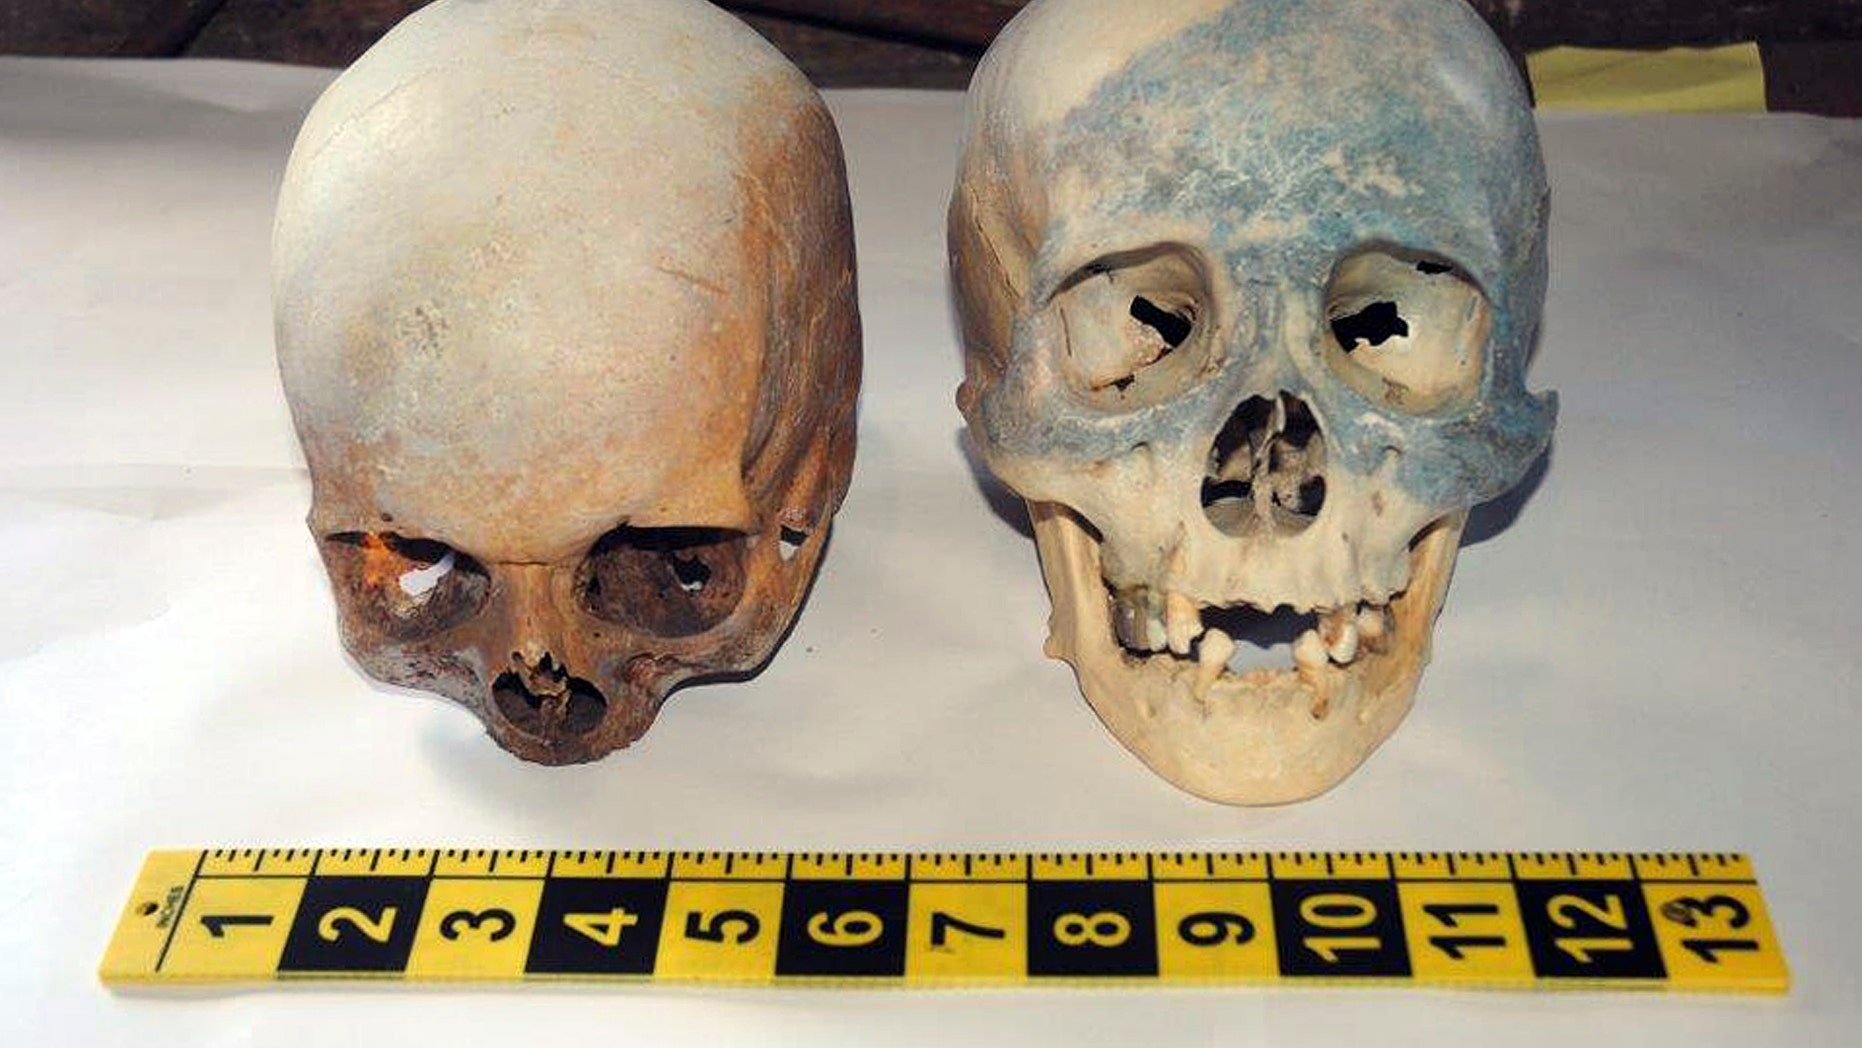 In this photo released by the Stamford, Conn., Police Department Friday, Oct. 31, 2014, two human skull are displayed, which were found at the Stamford Refuge Transfer Station. (AP/Stamford Police Department)